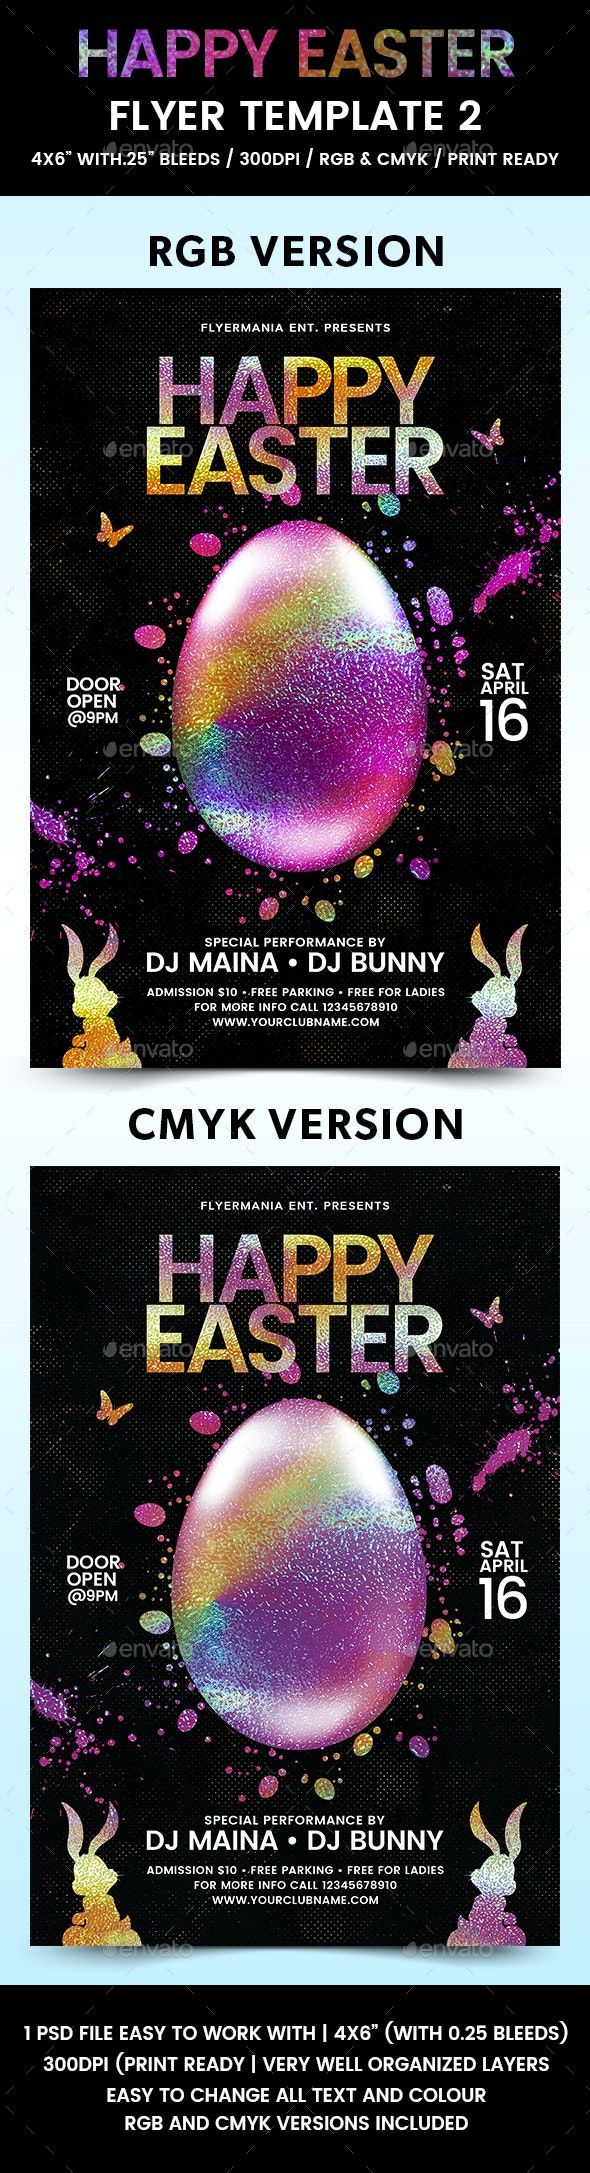 Happy Easter Flyer Template 2 - Flyers Print Templates